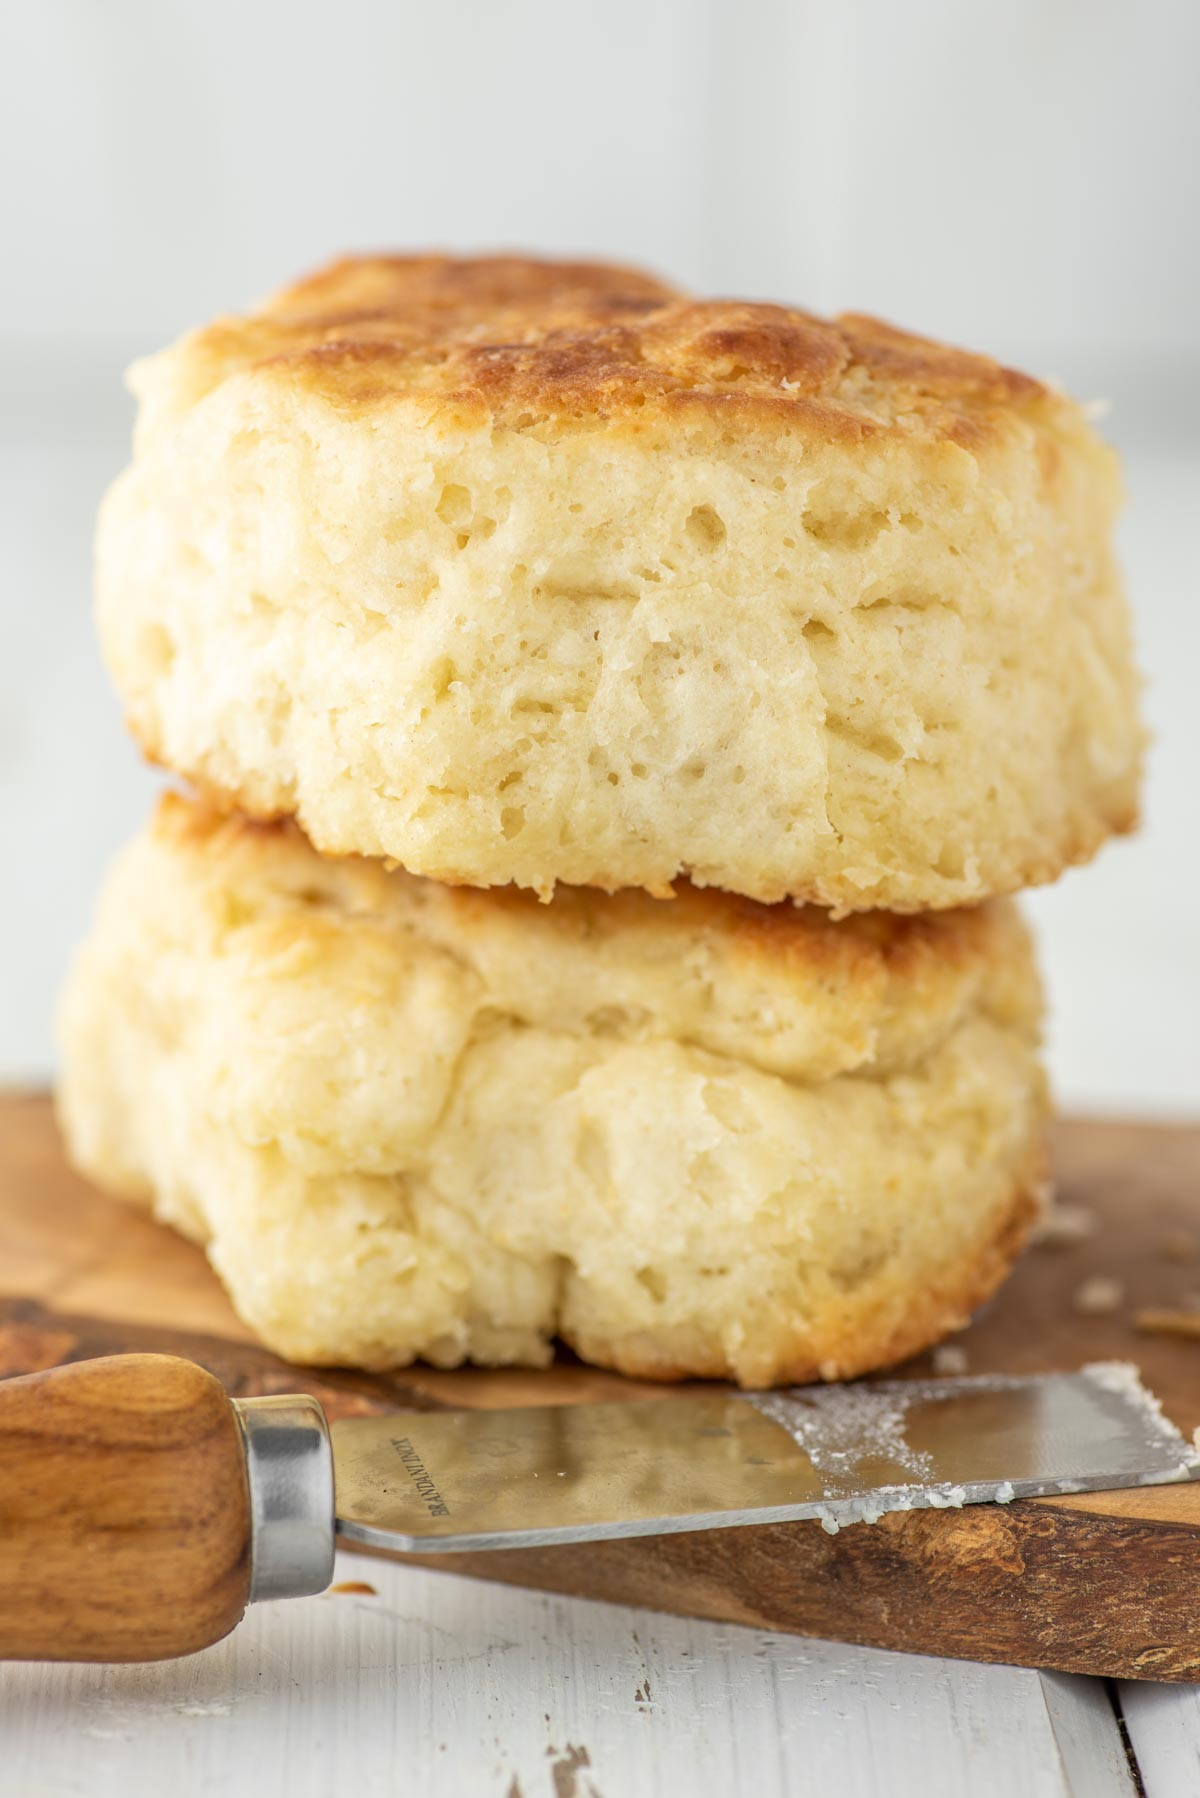 two buttermilk biscuits on wood board with butter knife